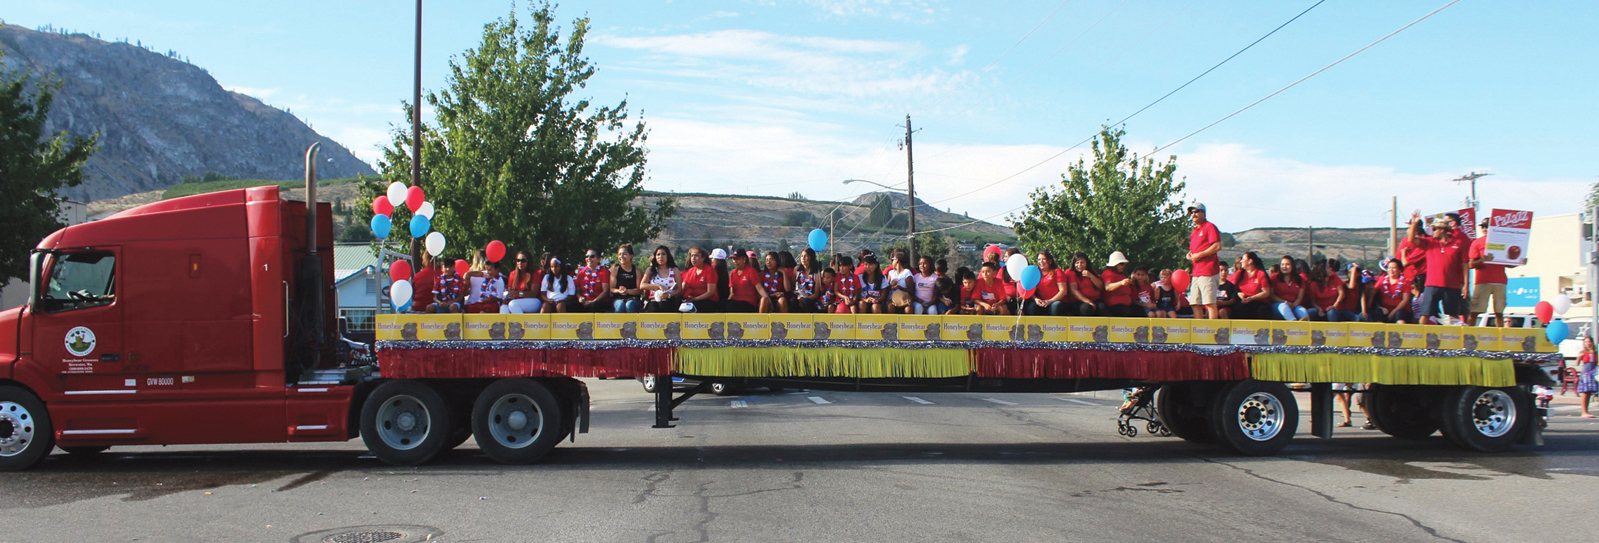 Honey Bear employees piled on a flatbed trailer made up the parade's largest contingent.